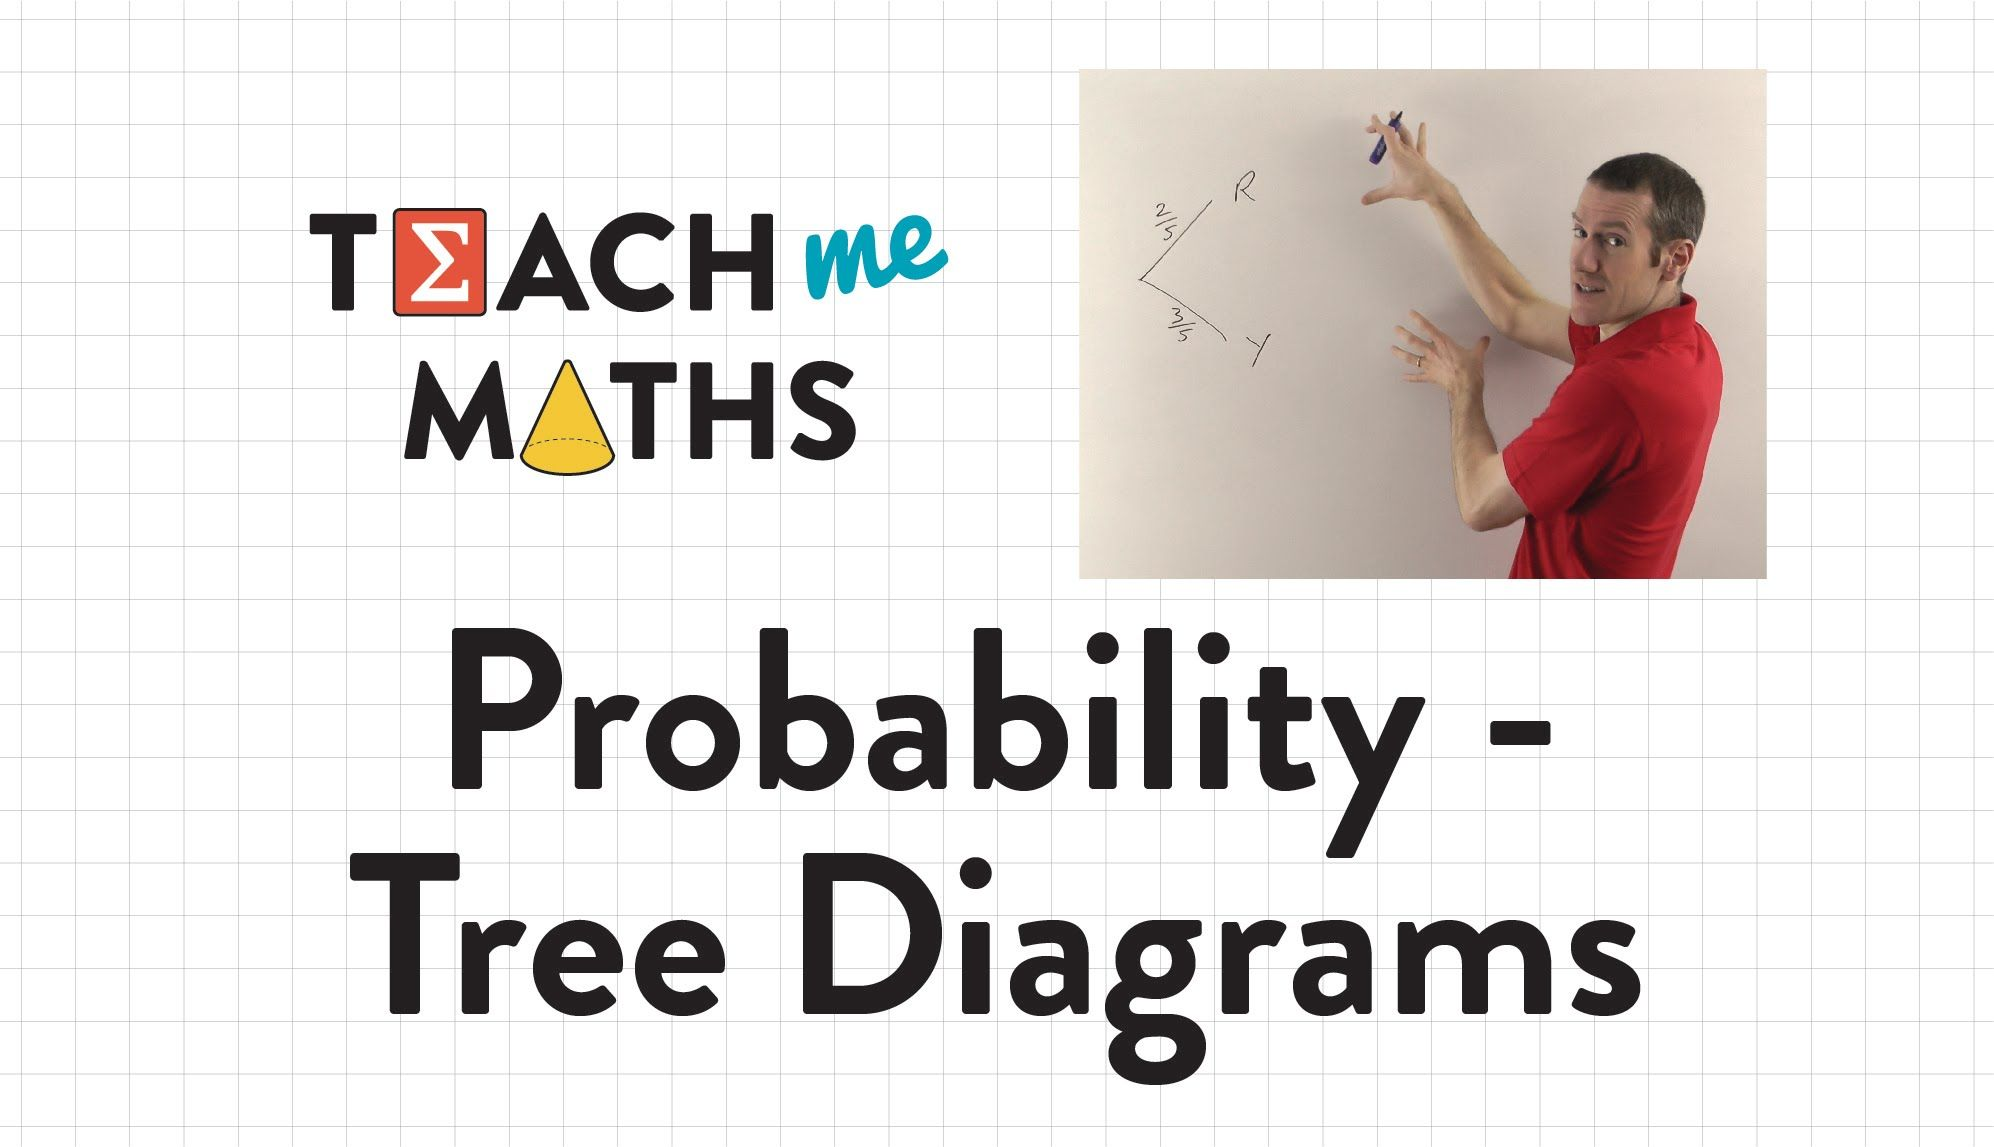 medium resolution of Probability - Tree Diagrams   Tree diagram